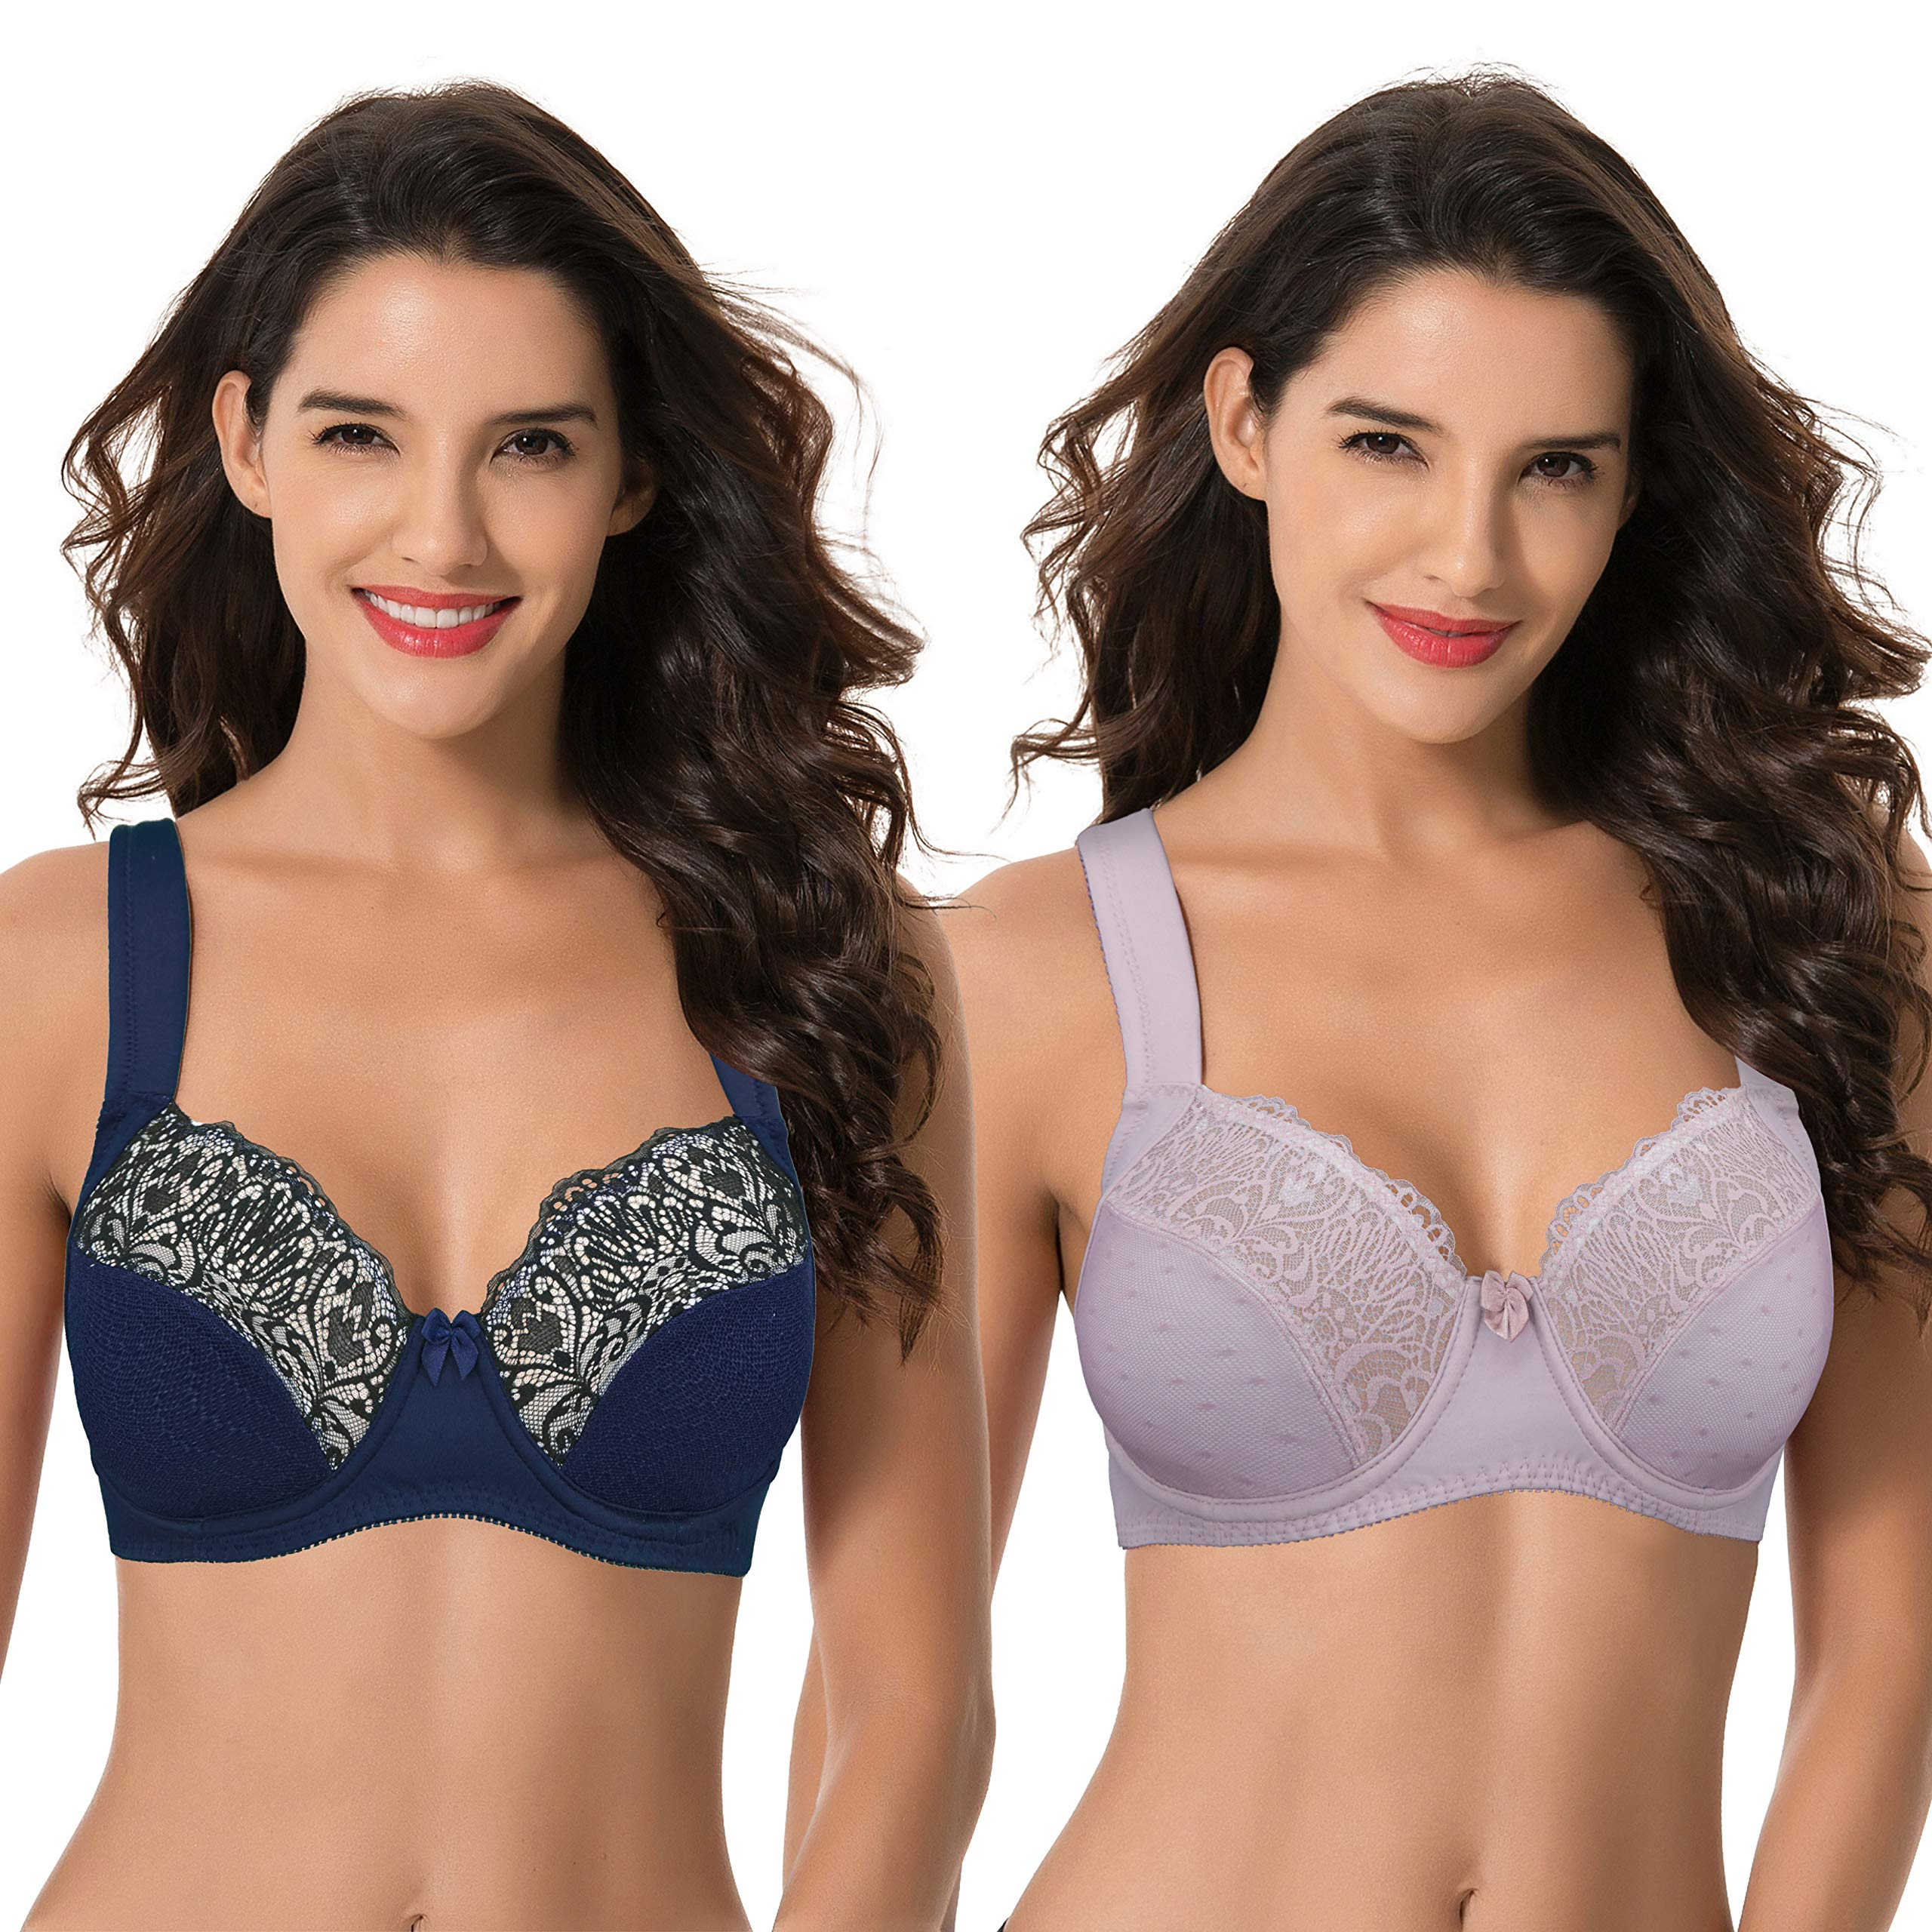 Curve Muse Plus Size Unlined Underwire Lace Bra with Padded Shoulder Straps-2PK